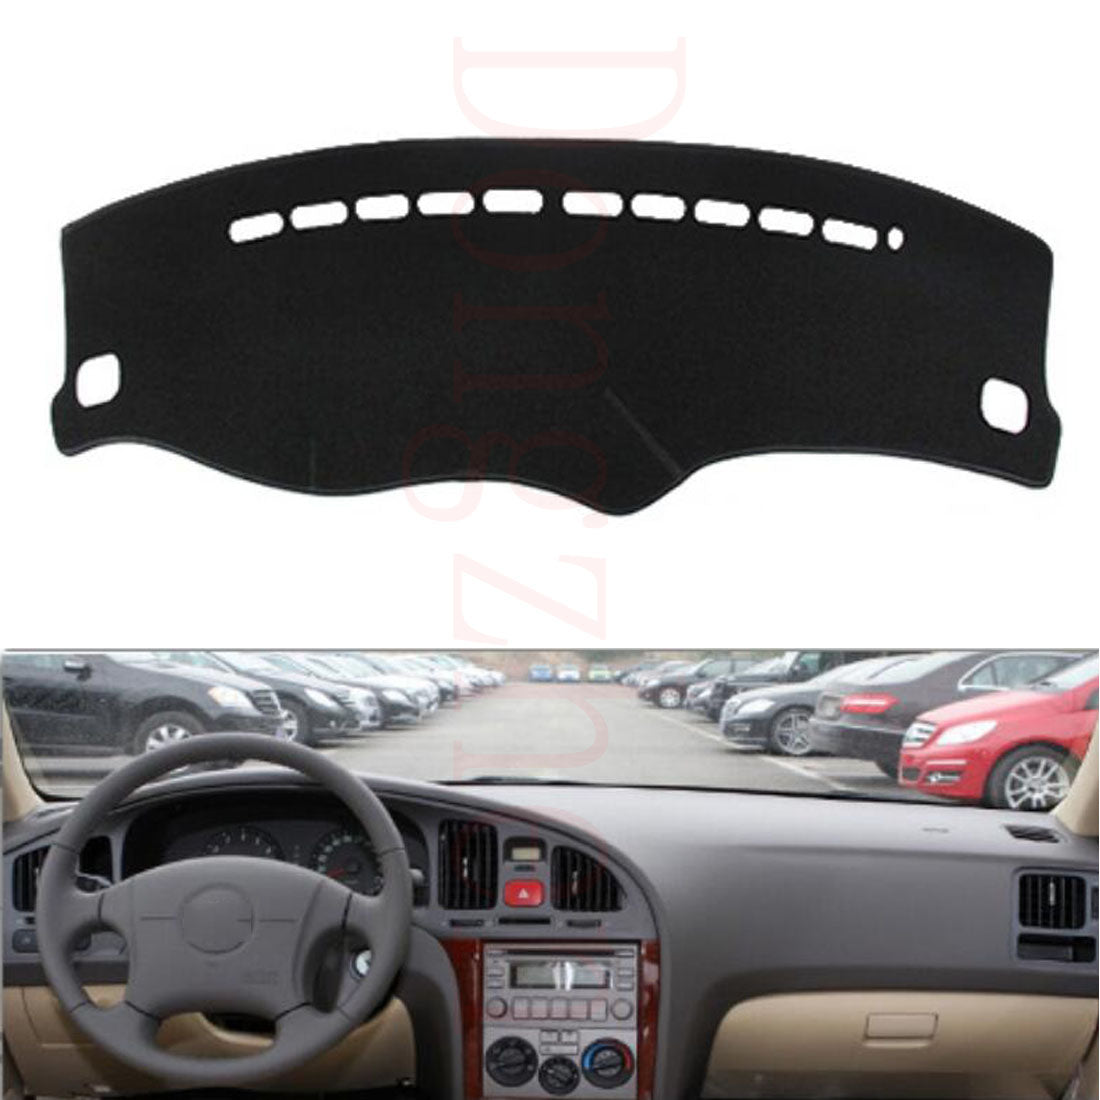 Dashboard Cover For Hyundai Elantra 2004 to 2011,  - Any Car Accessories